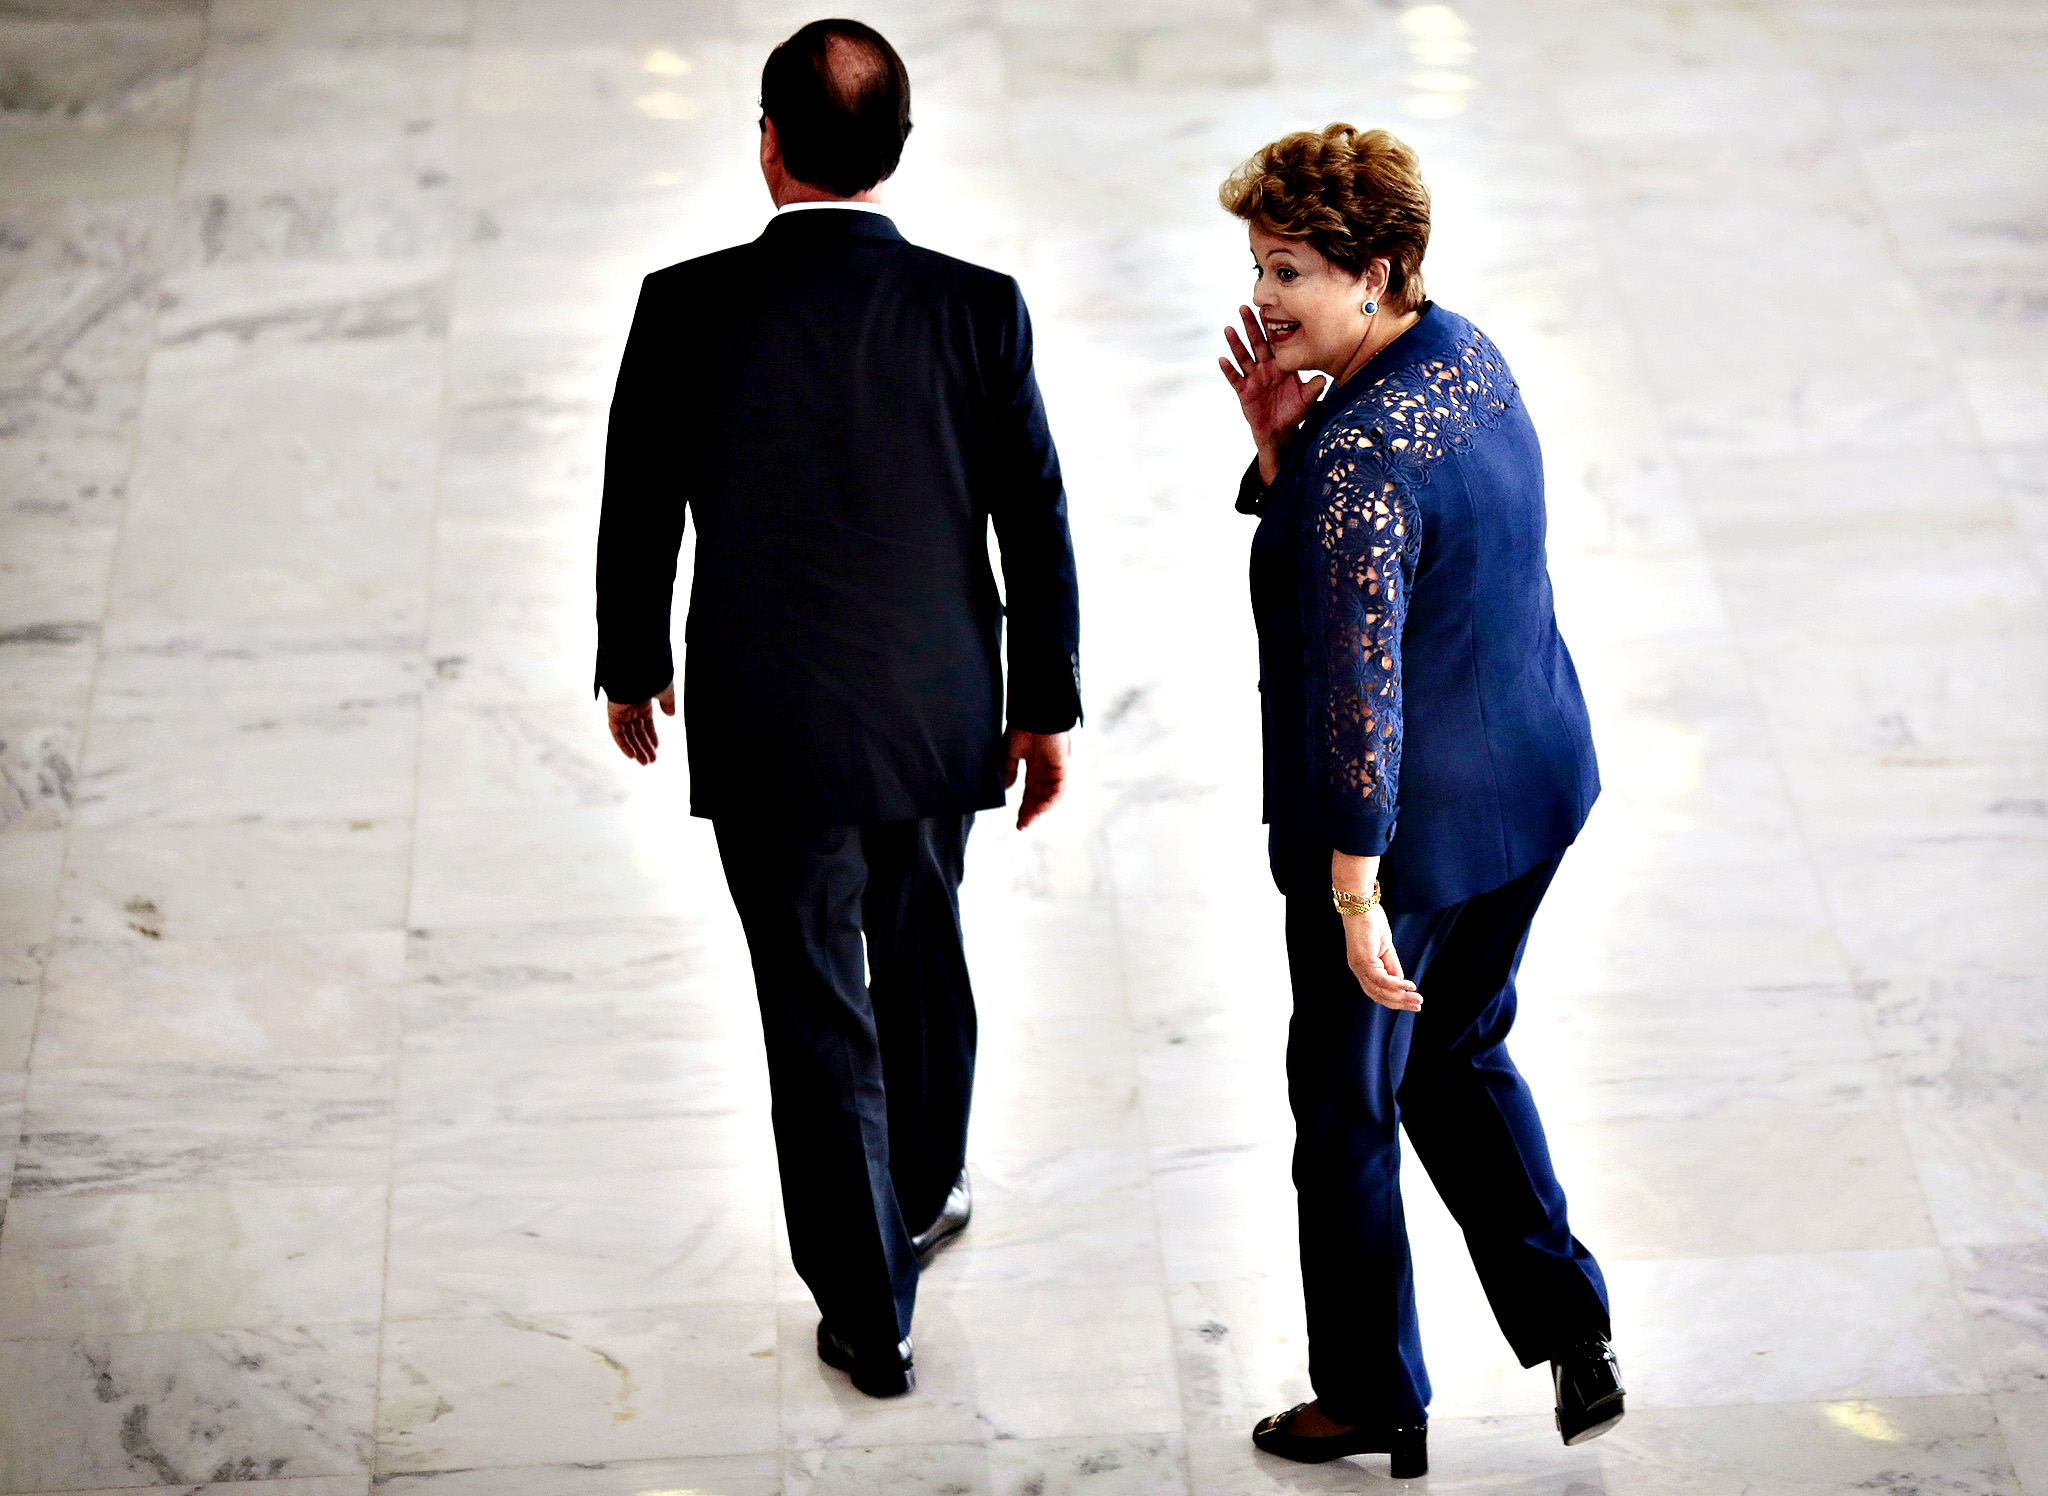 France's President Francois Hollande (L) and Brazil's President Dilma Rousseff attend a welcoming ceremony at the Planalto Palace in Brasilia December 12, 2013.